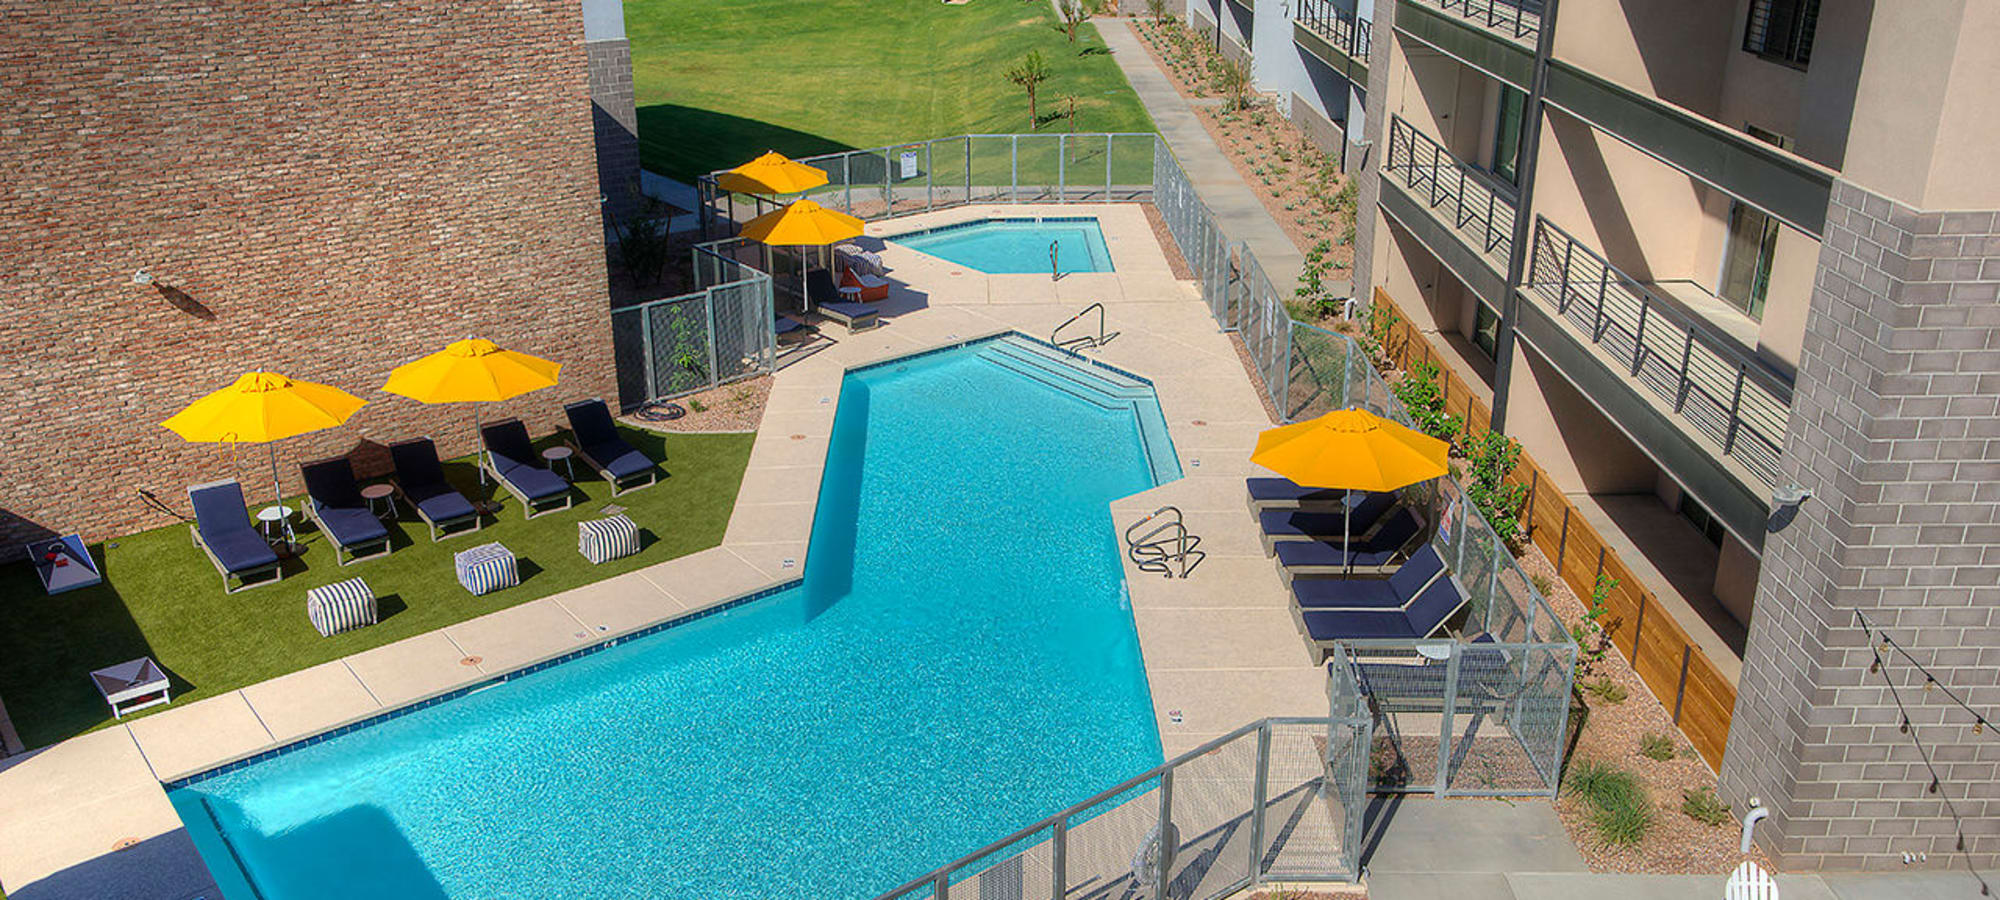 Beautiful swimming pool area at District Lofts in Gilbert, Arizona